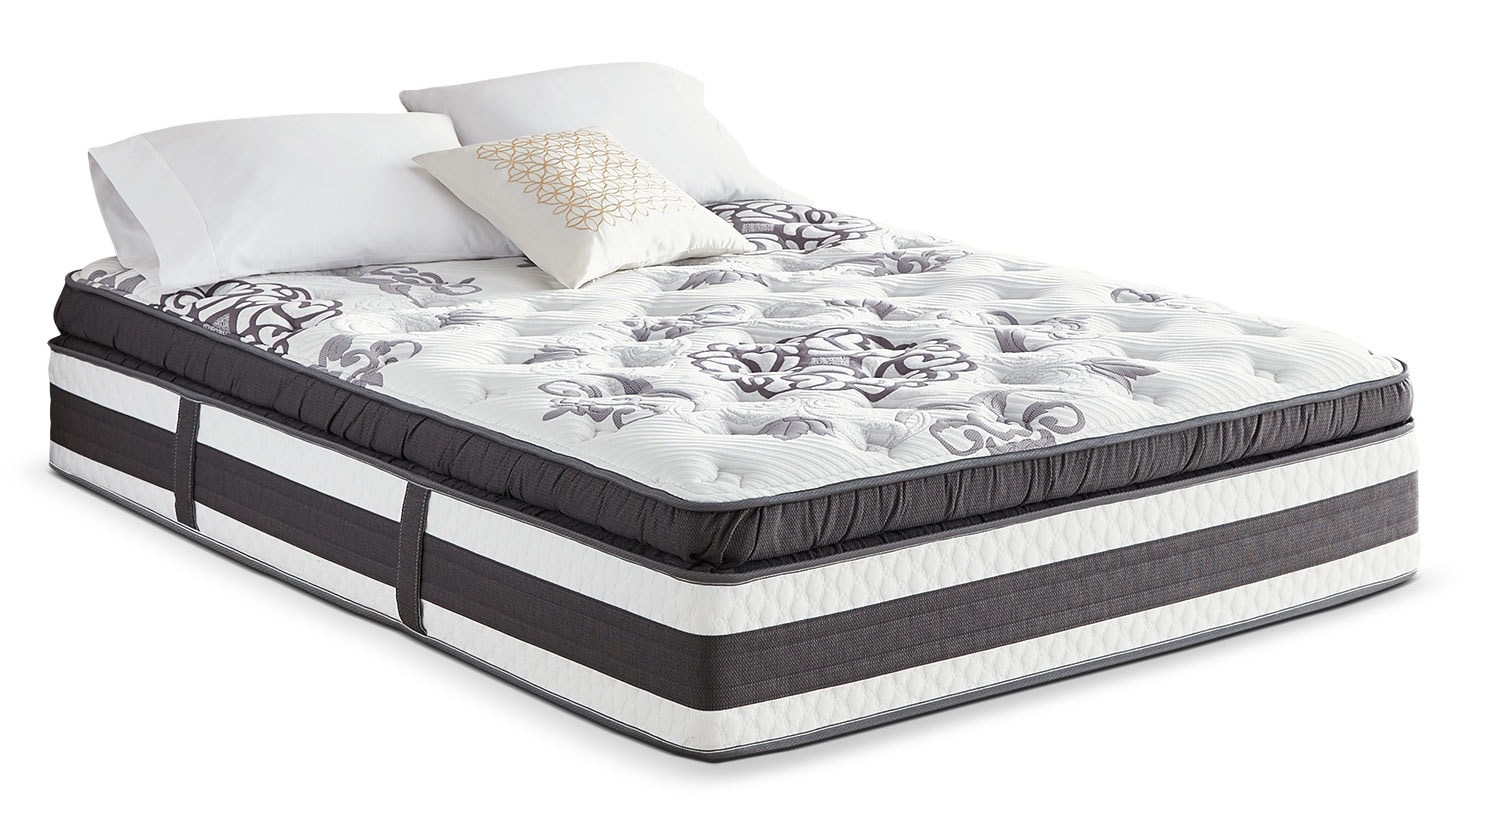 Serta iCollection Hopedale Super Pillow-Top Plush King Mattress